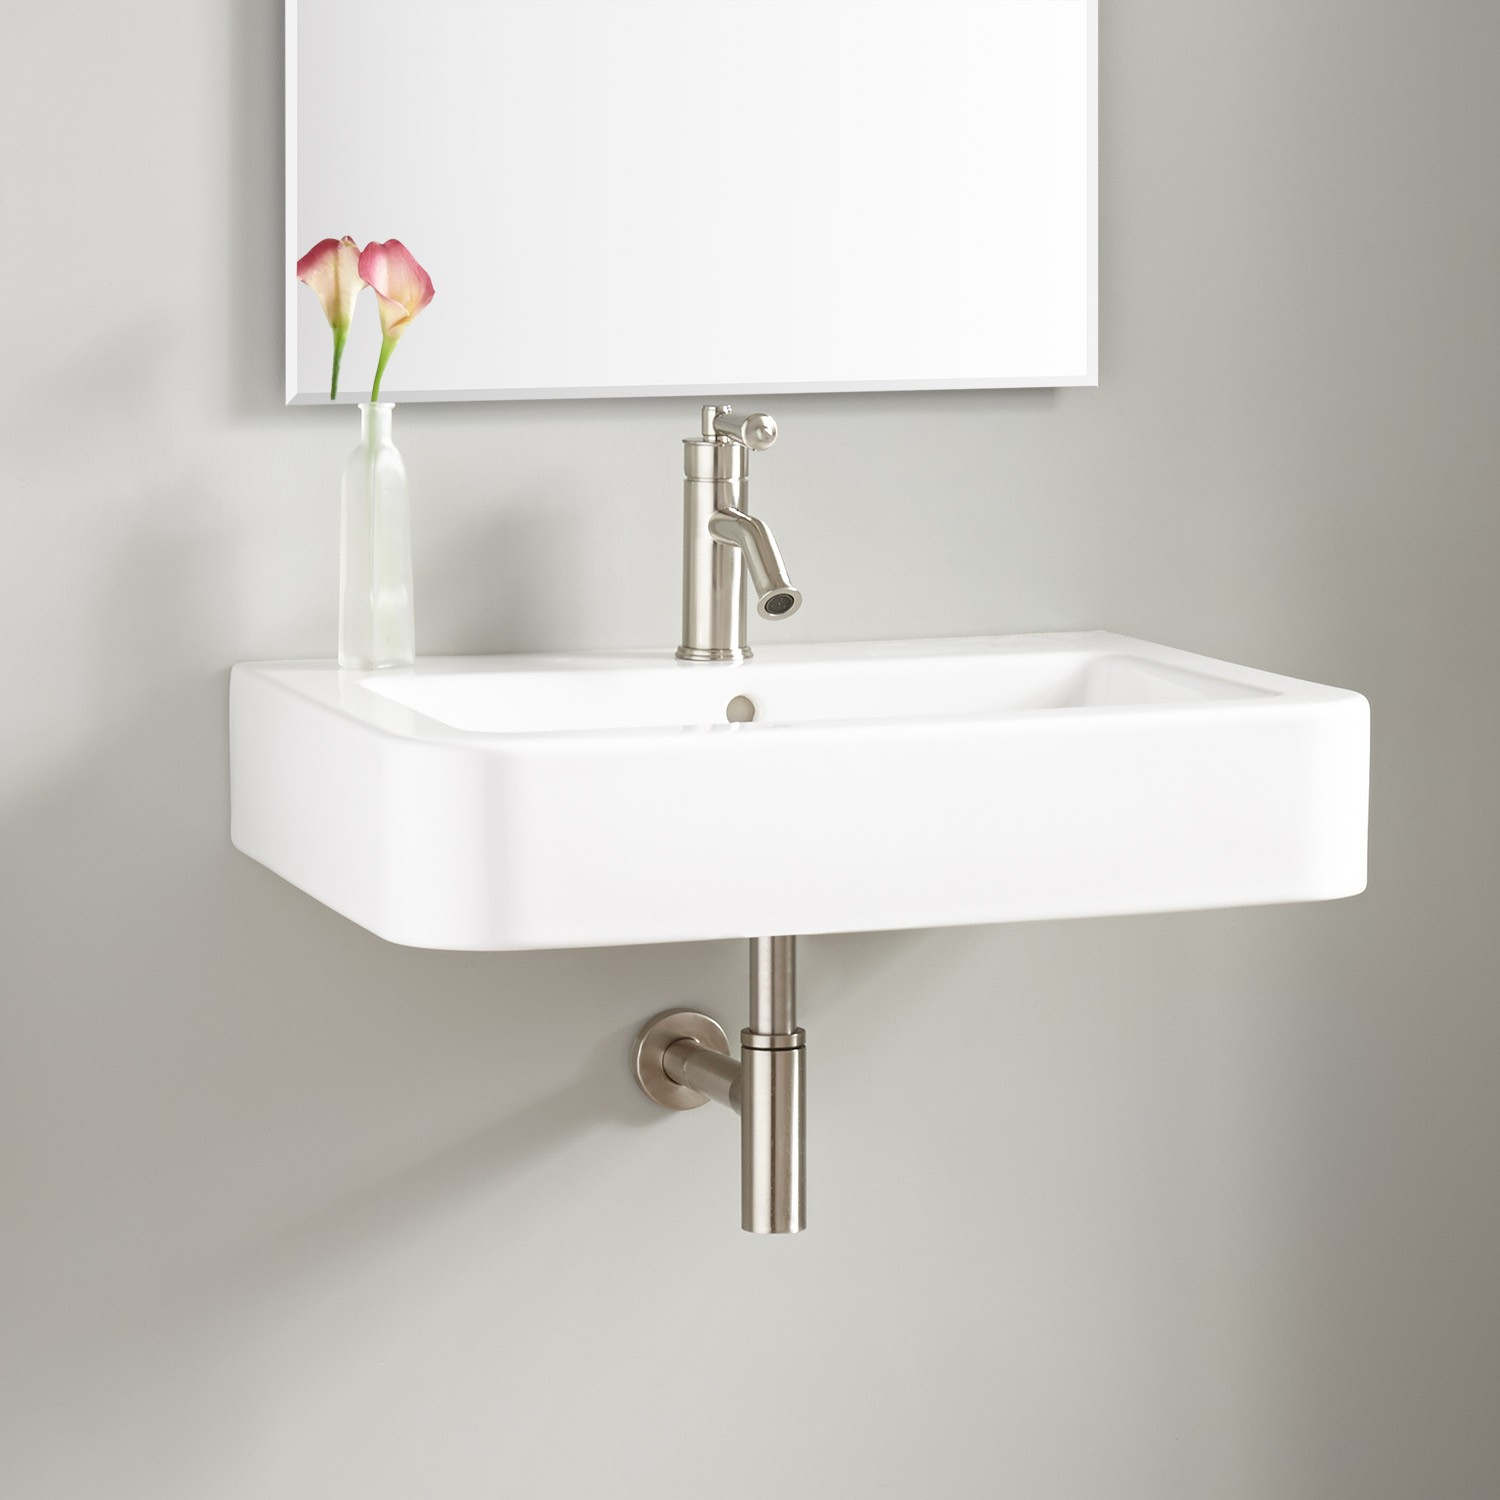 Wall-Mounted Sink for Extra Space